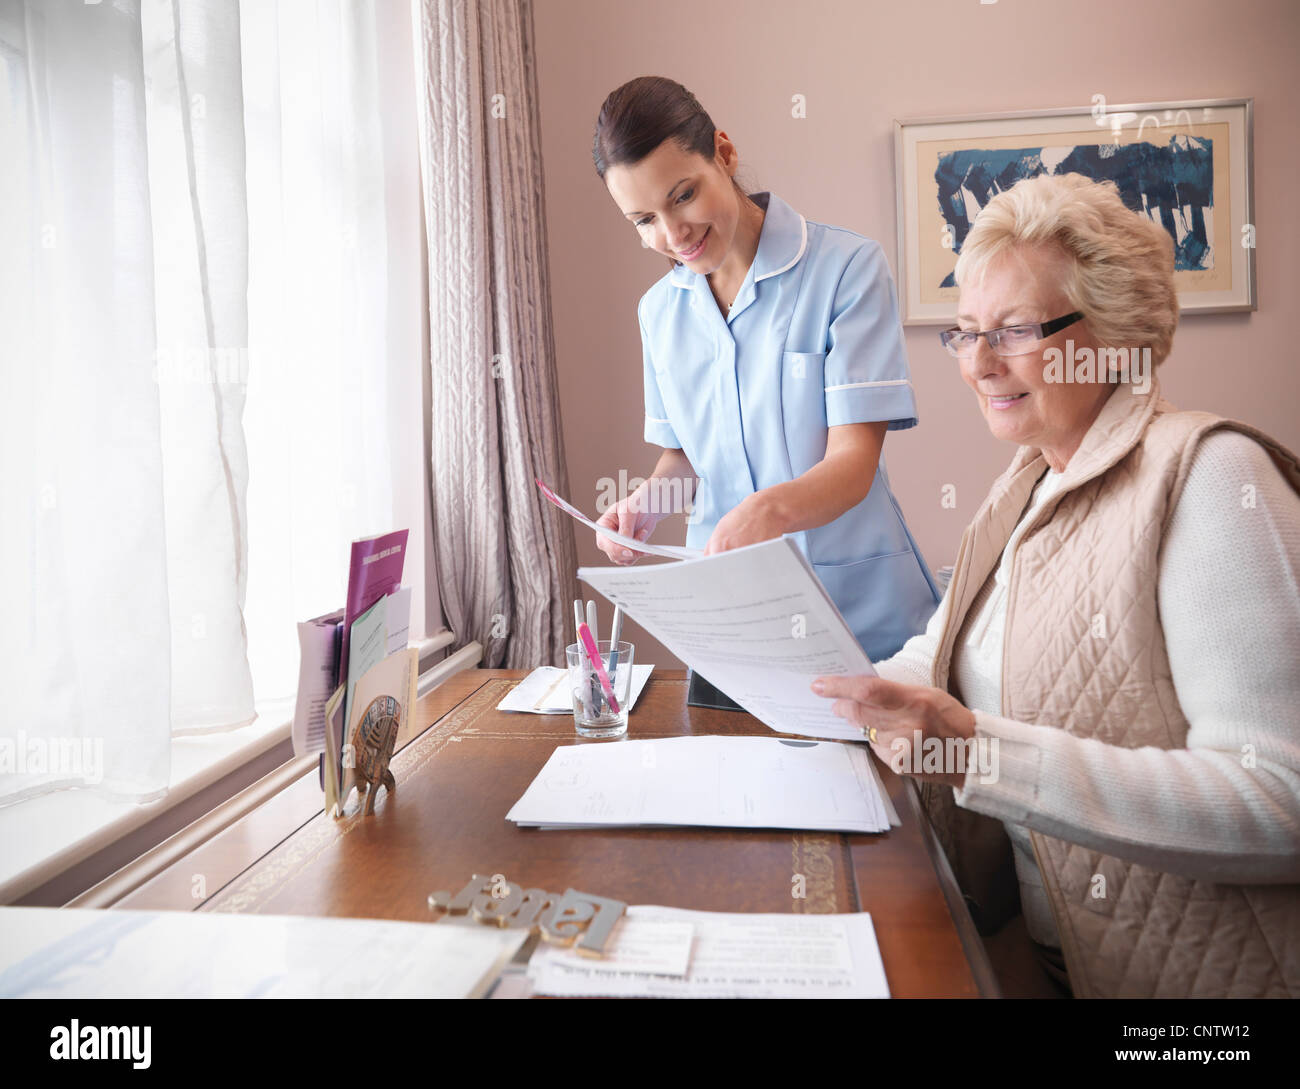 Older woman and nurse reading papers - Stock Image